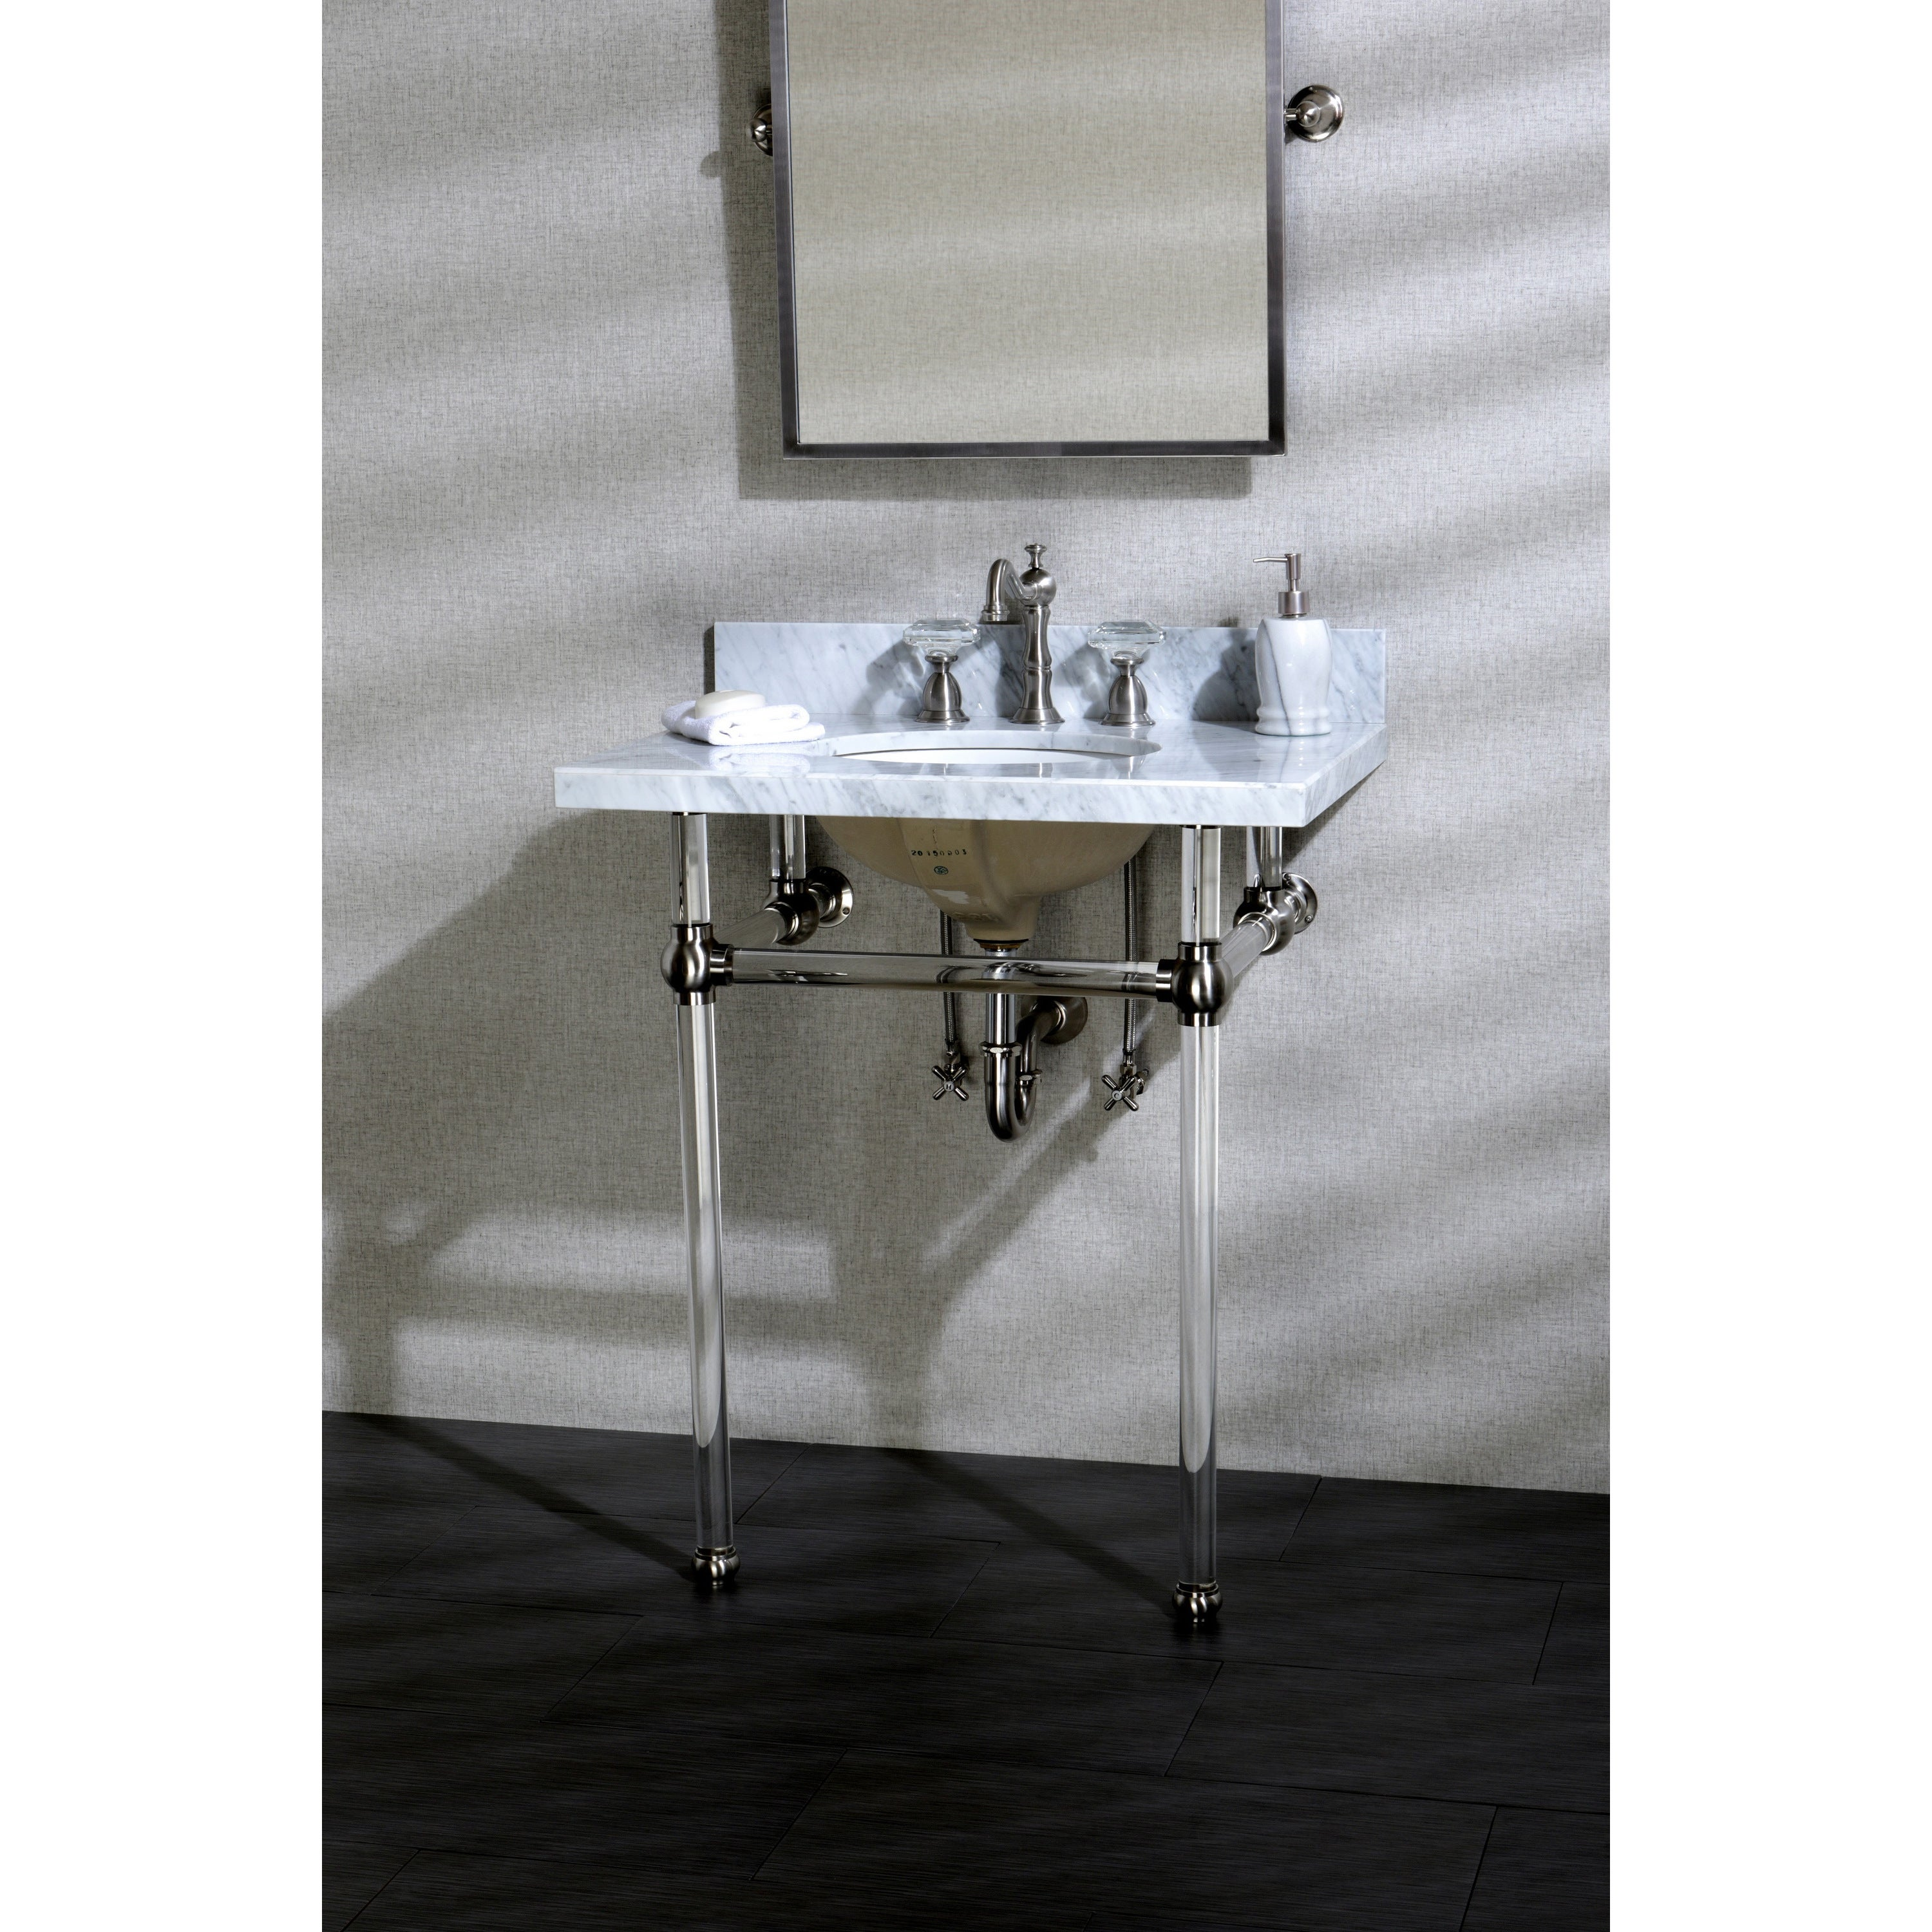 Vintage Console Bathroom Sinks By Cheviot Throughout Sink Plans 11